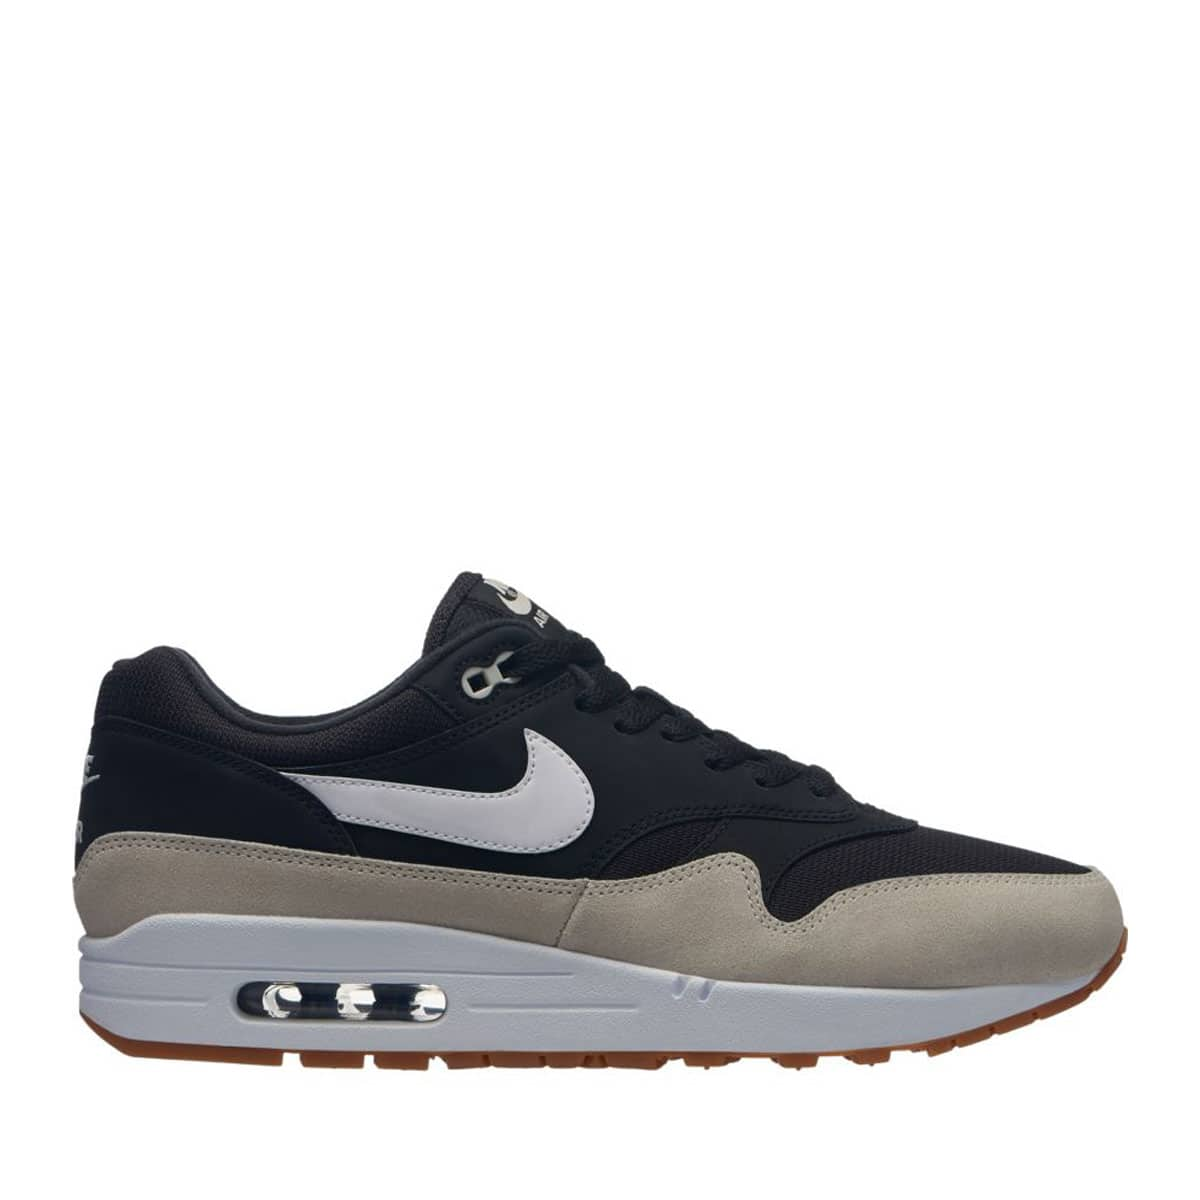 NIKE AIR MAX 1  BLACK/WHITE-LIGHT BONE 18HO-I_photo_large